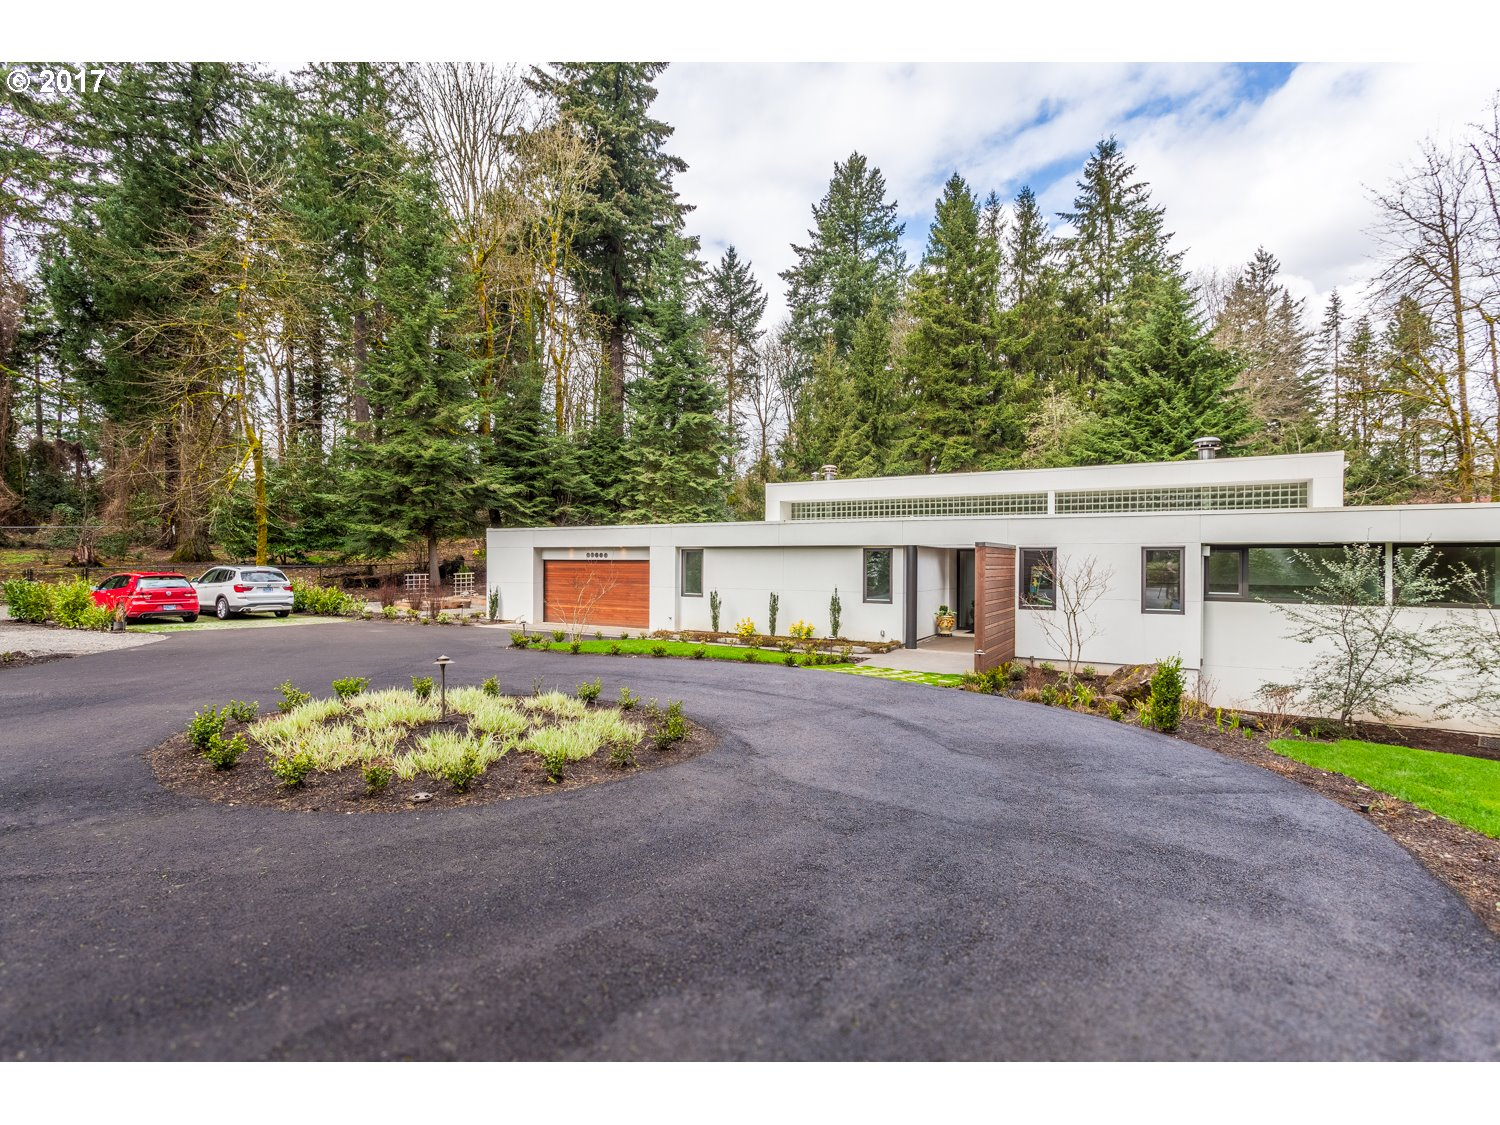 2915 sq. ft 3 bedrooms 3 bathrooms  House For Sale,Portland, OR